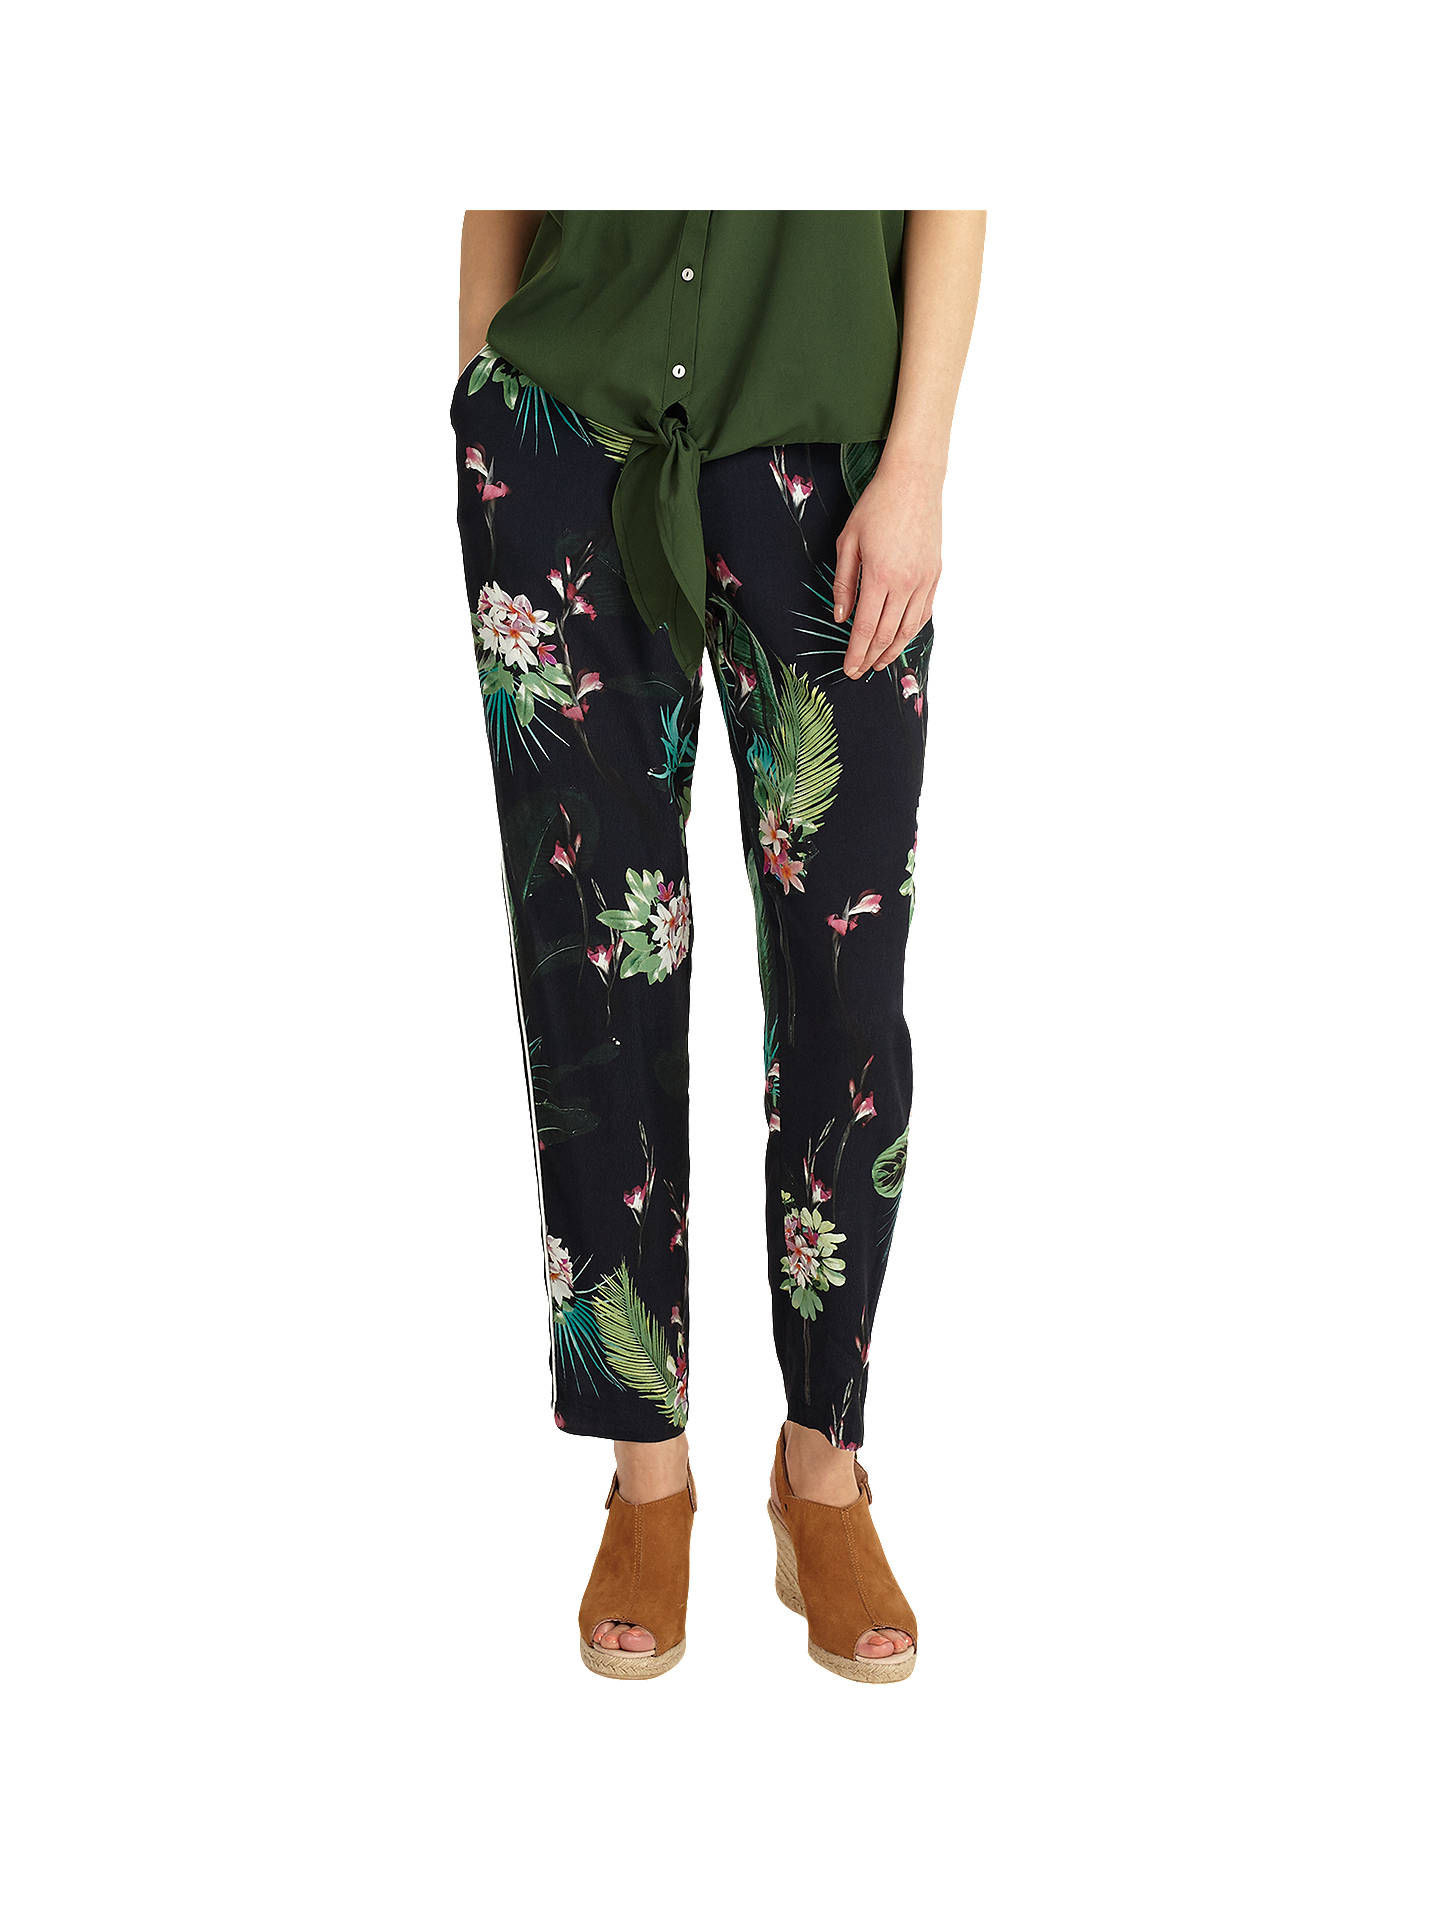 BuyPhase Eight Mila Tropical Print Trousers, Multi, 8 Online at johnlewis.com